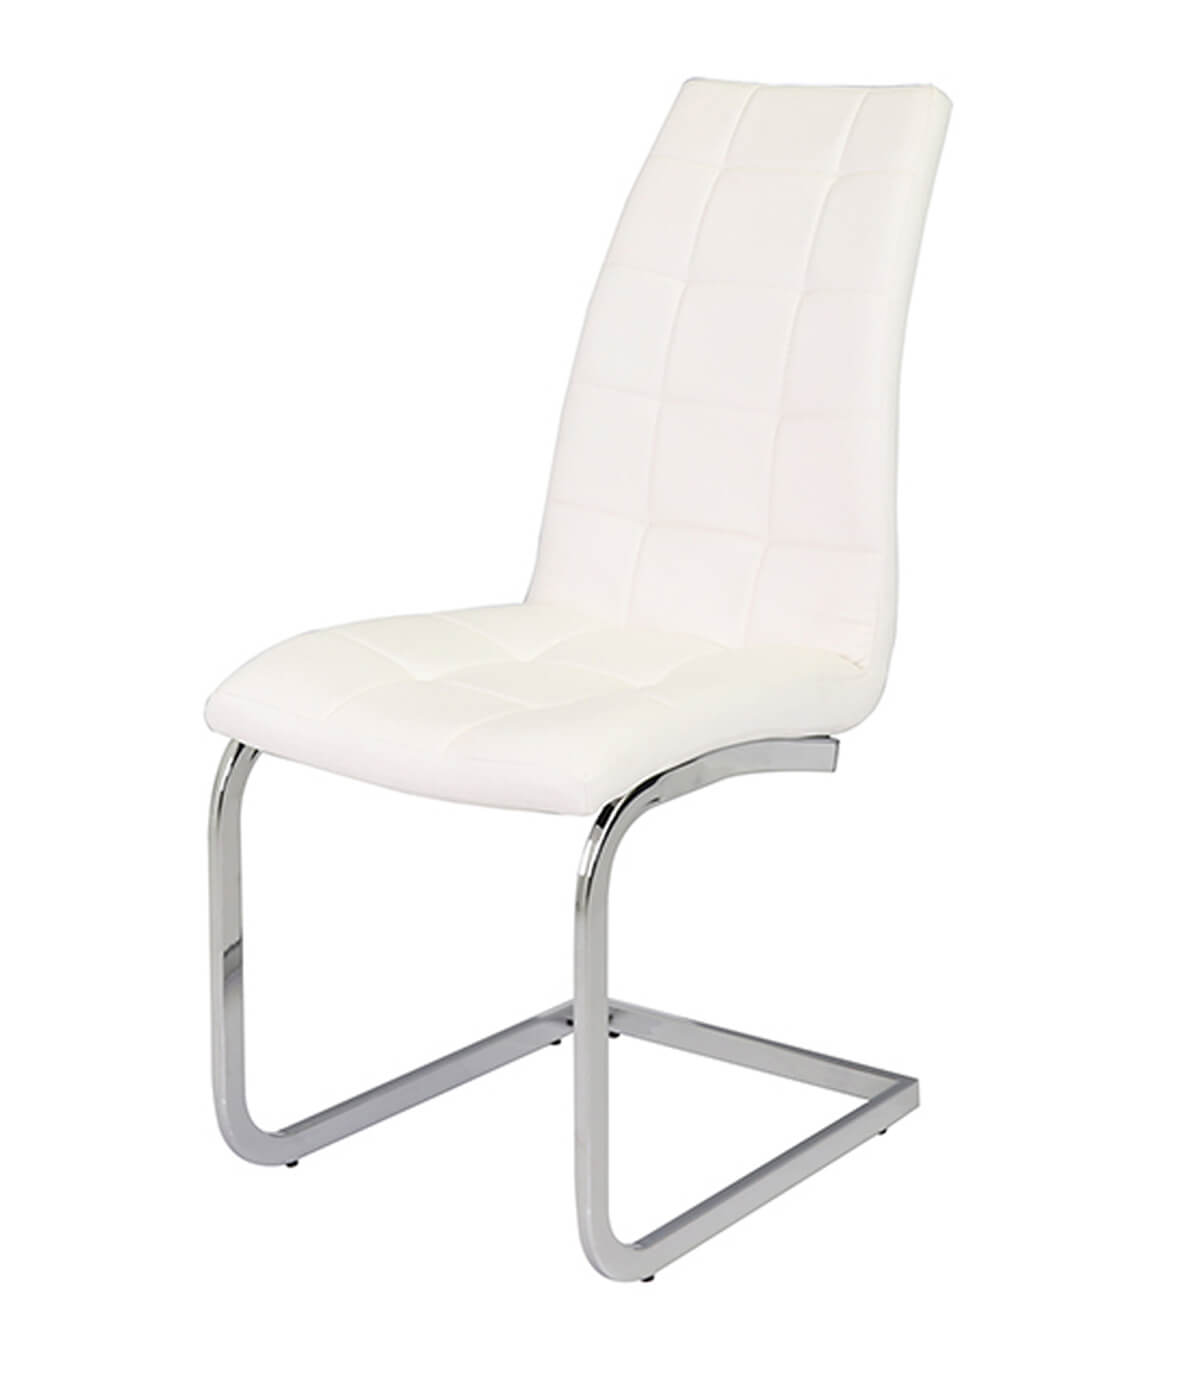 white faux leather chair vintage wedding sashes new york dining manchester